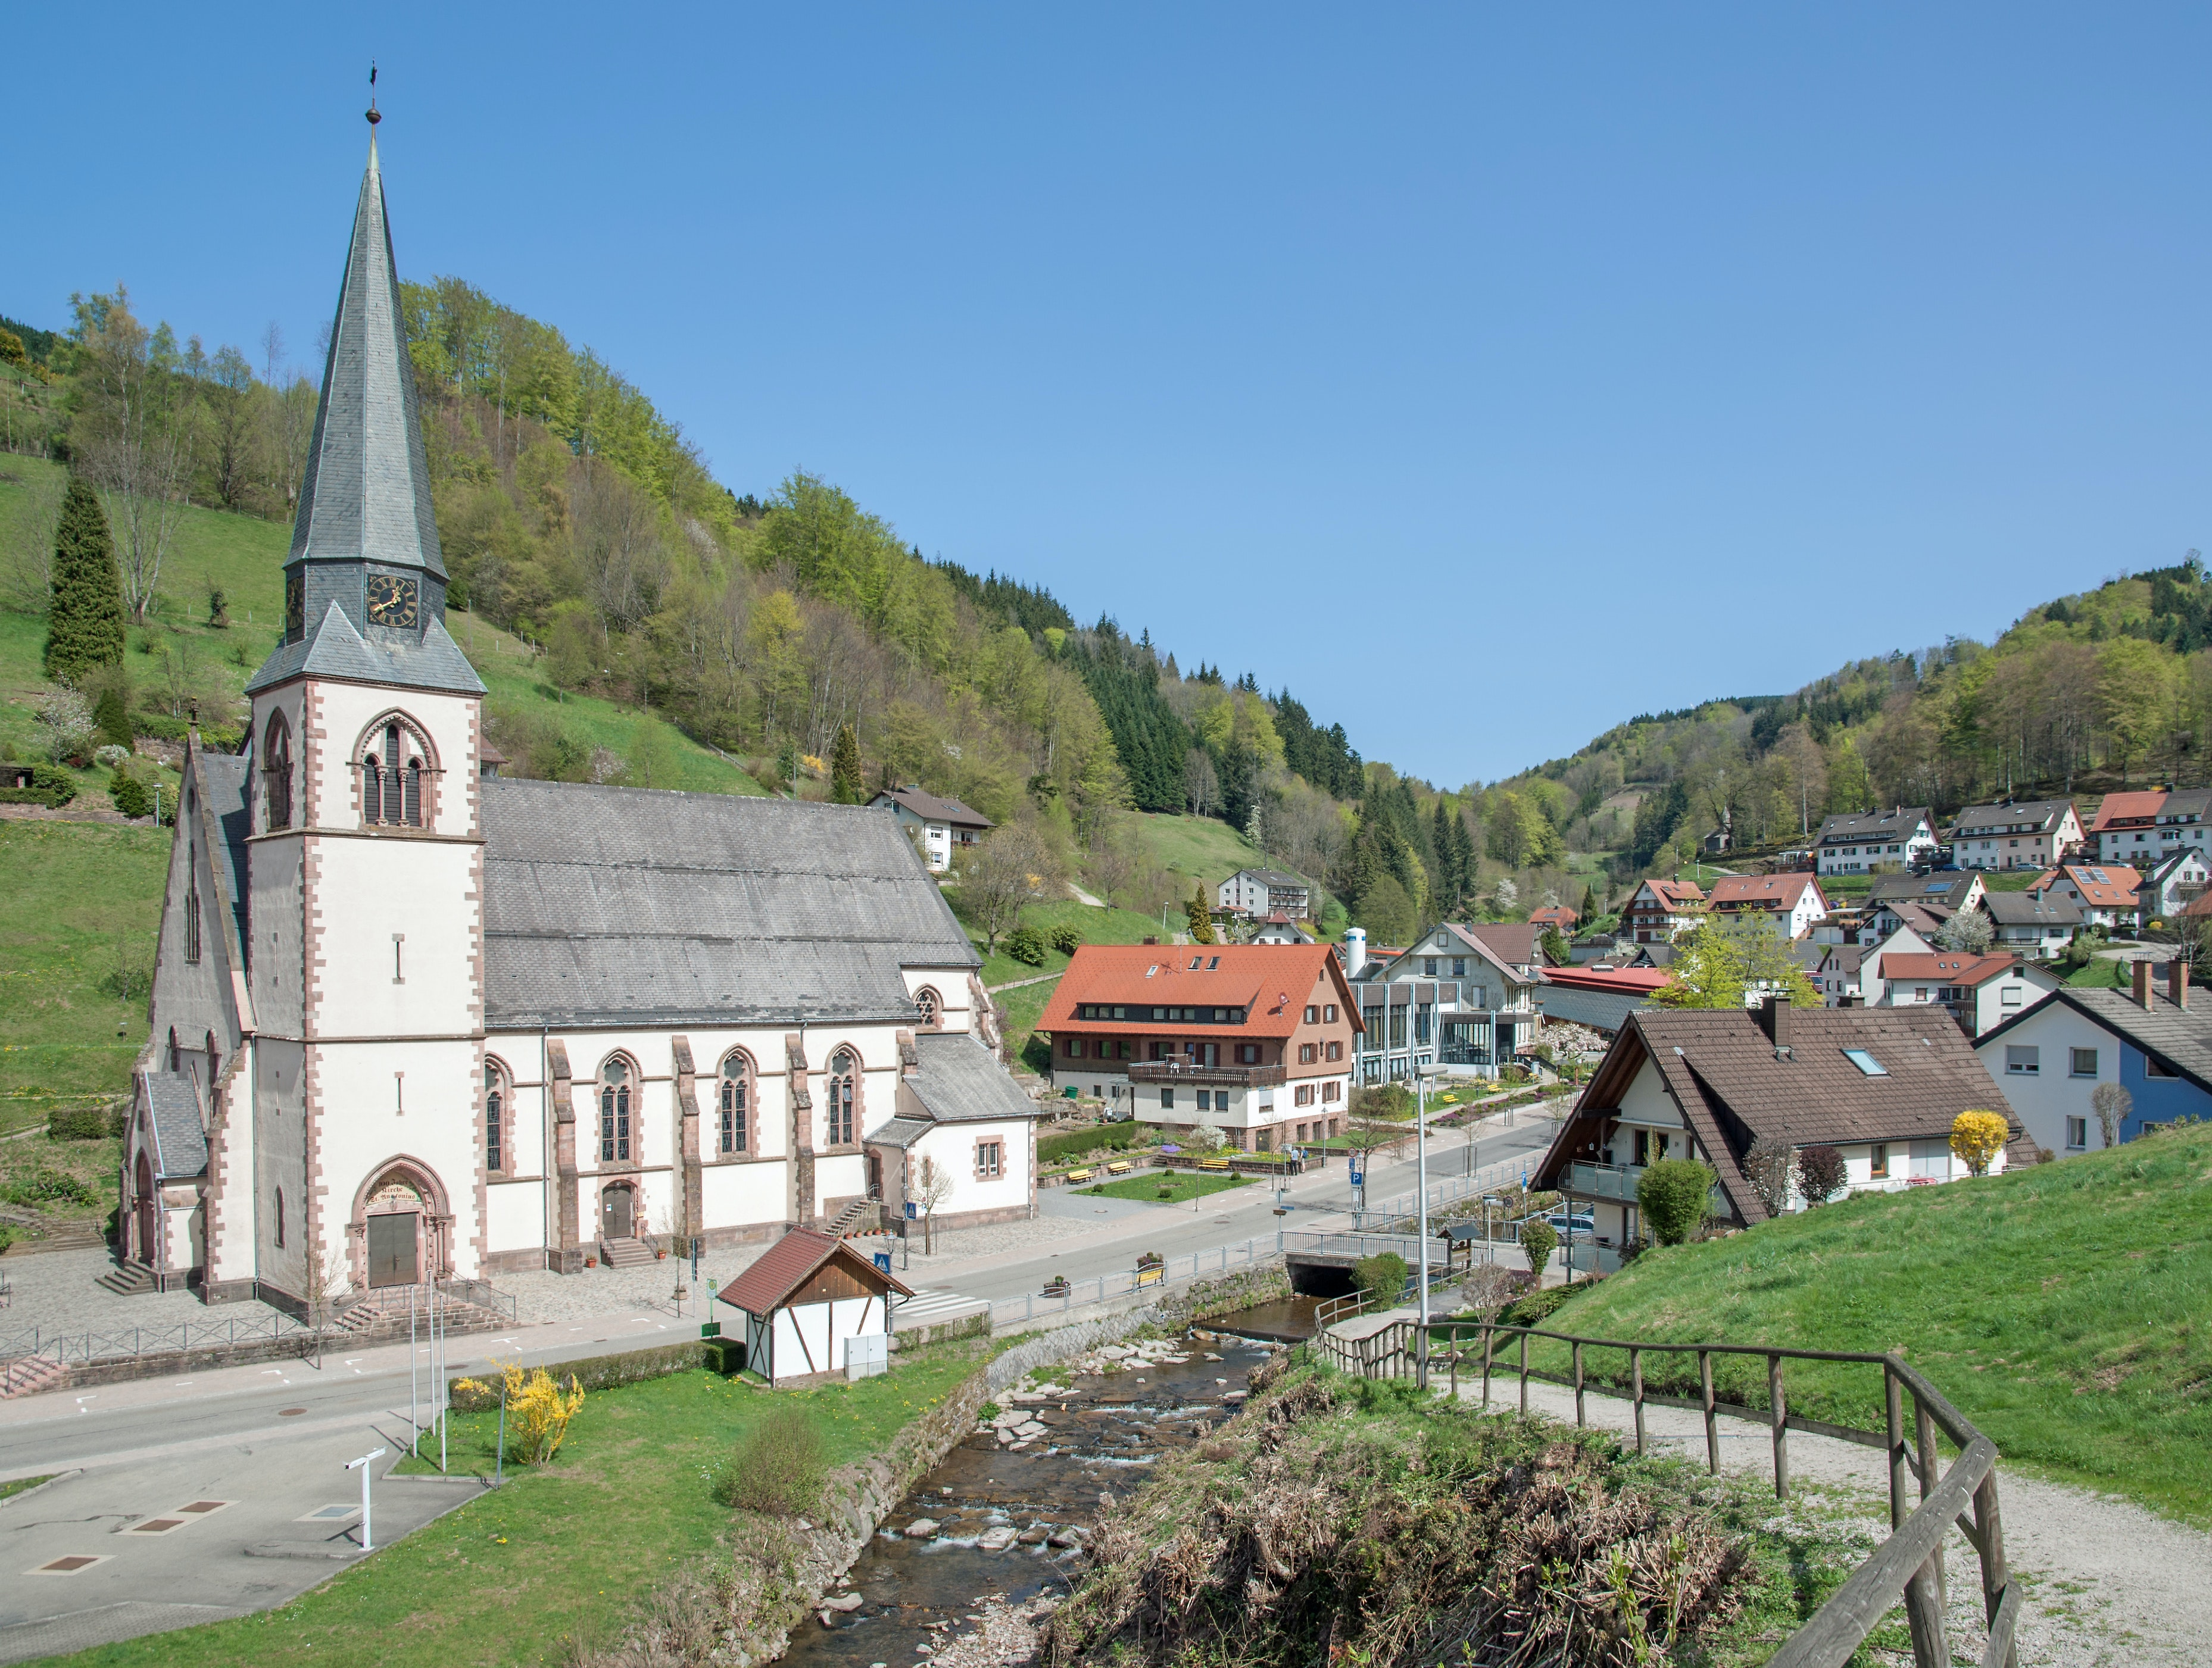 Bad Griesbach